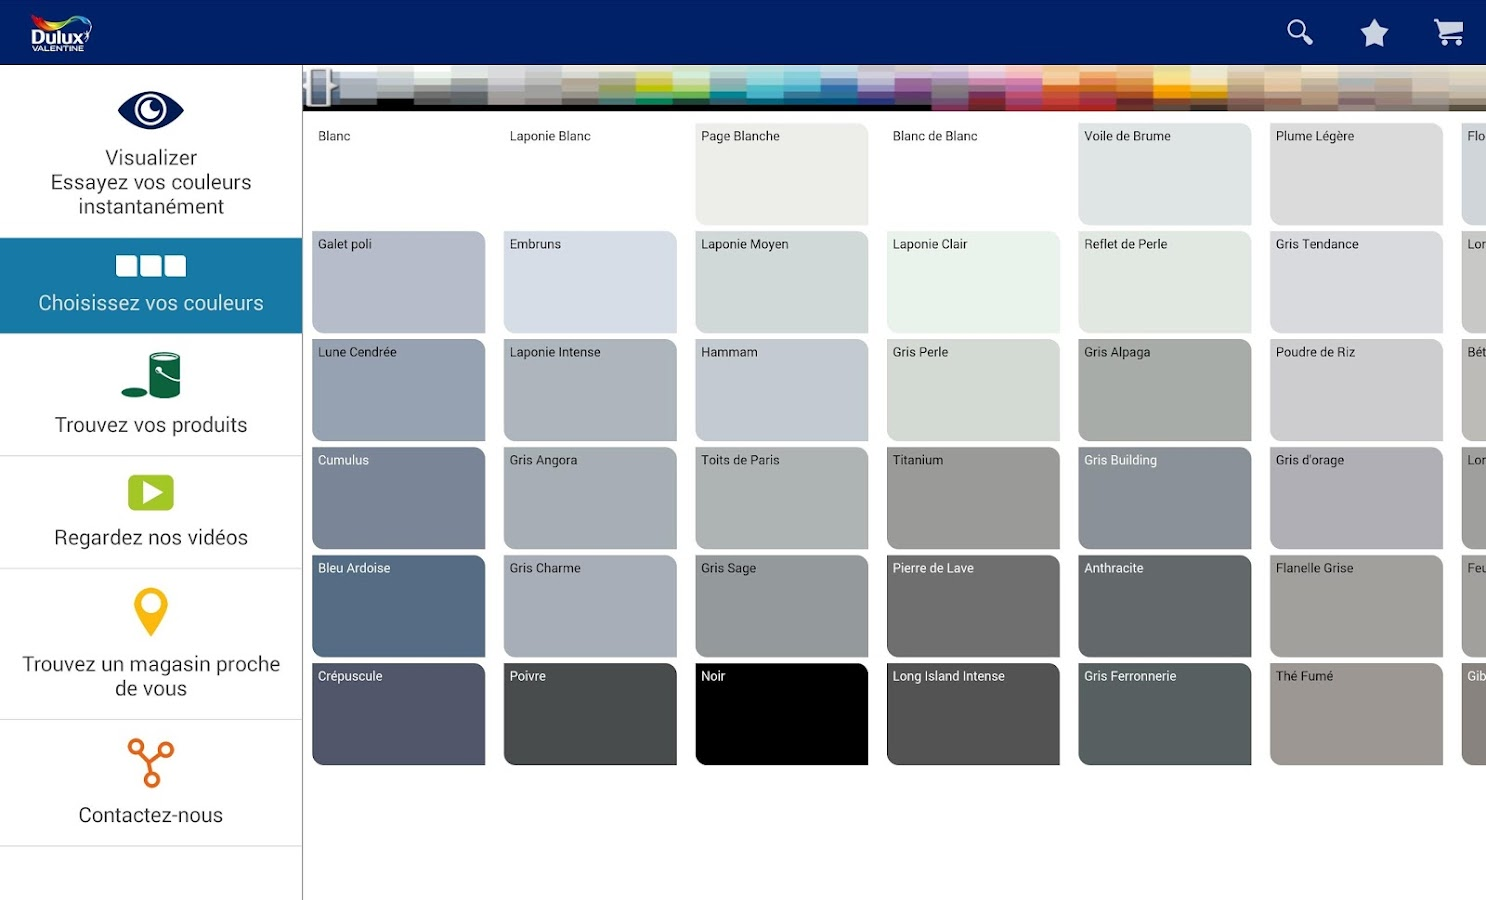 Dulux valentine visualizer android apps on google play - Valentine dulux simulation ...